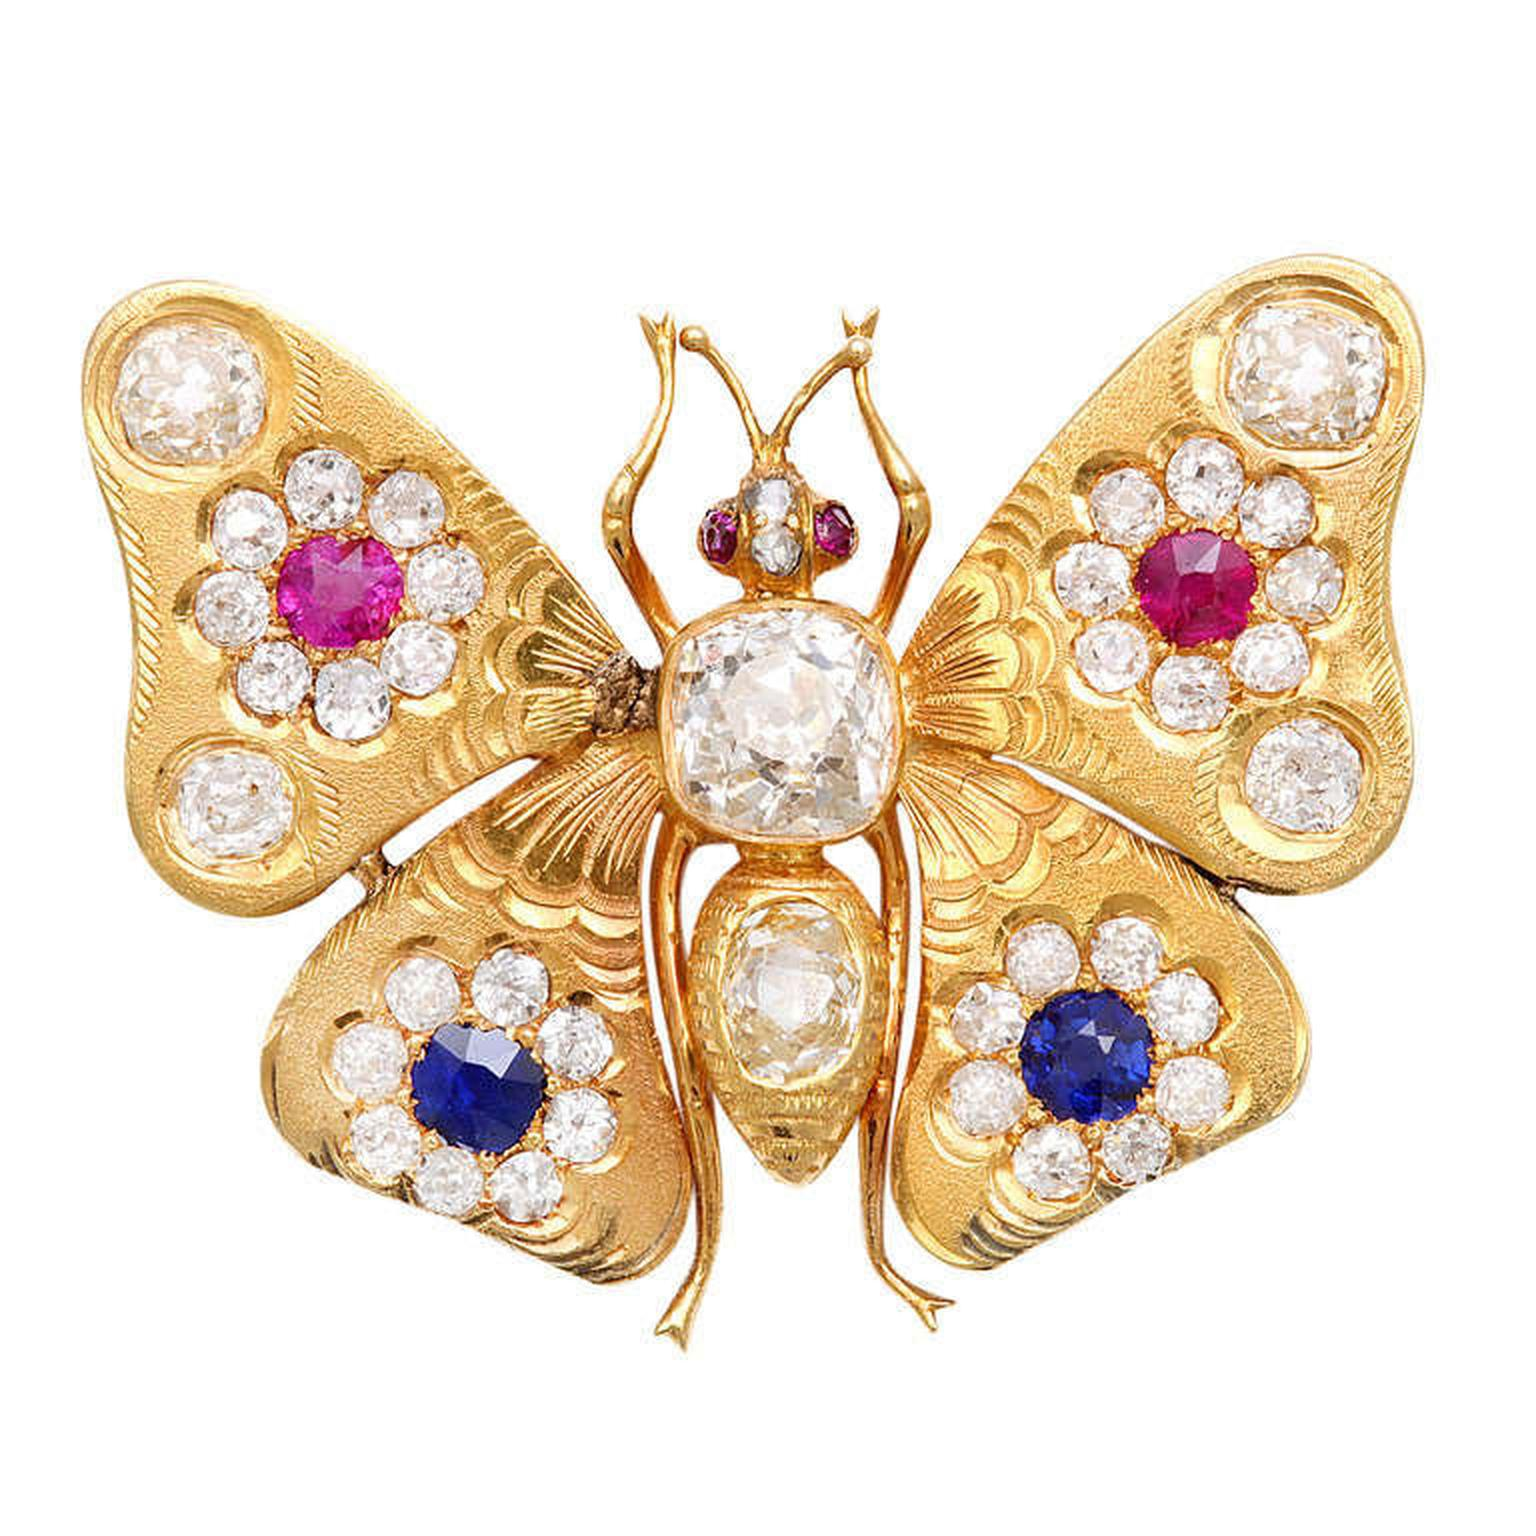 the vintage scale brooches gem false sides brooch butterfly la in article russie jewelry on of crop subsampling back atlantic antique jewellery upscale victorian both are set a vogue vieille